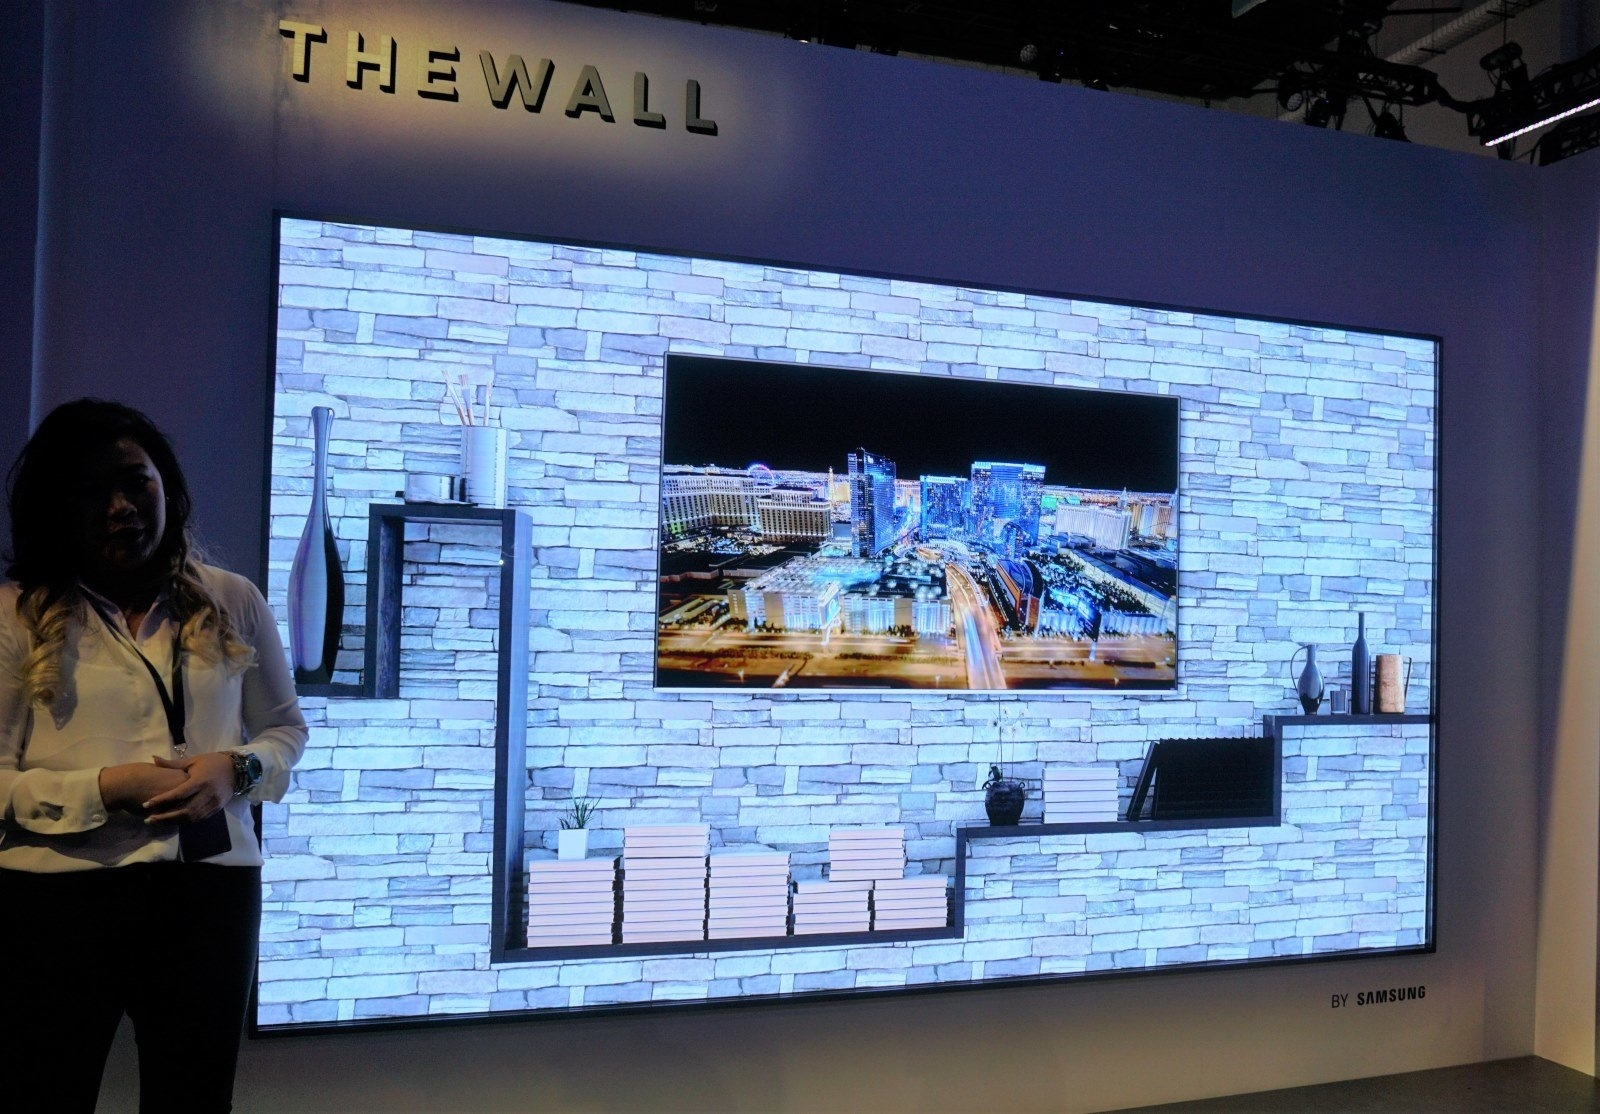 Samsung plans to turn 'The Wall' display into a home TV | DeviceDaily.com